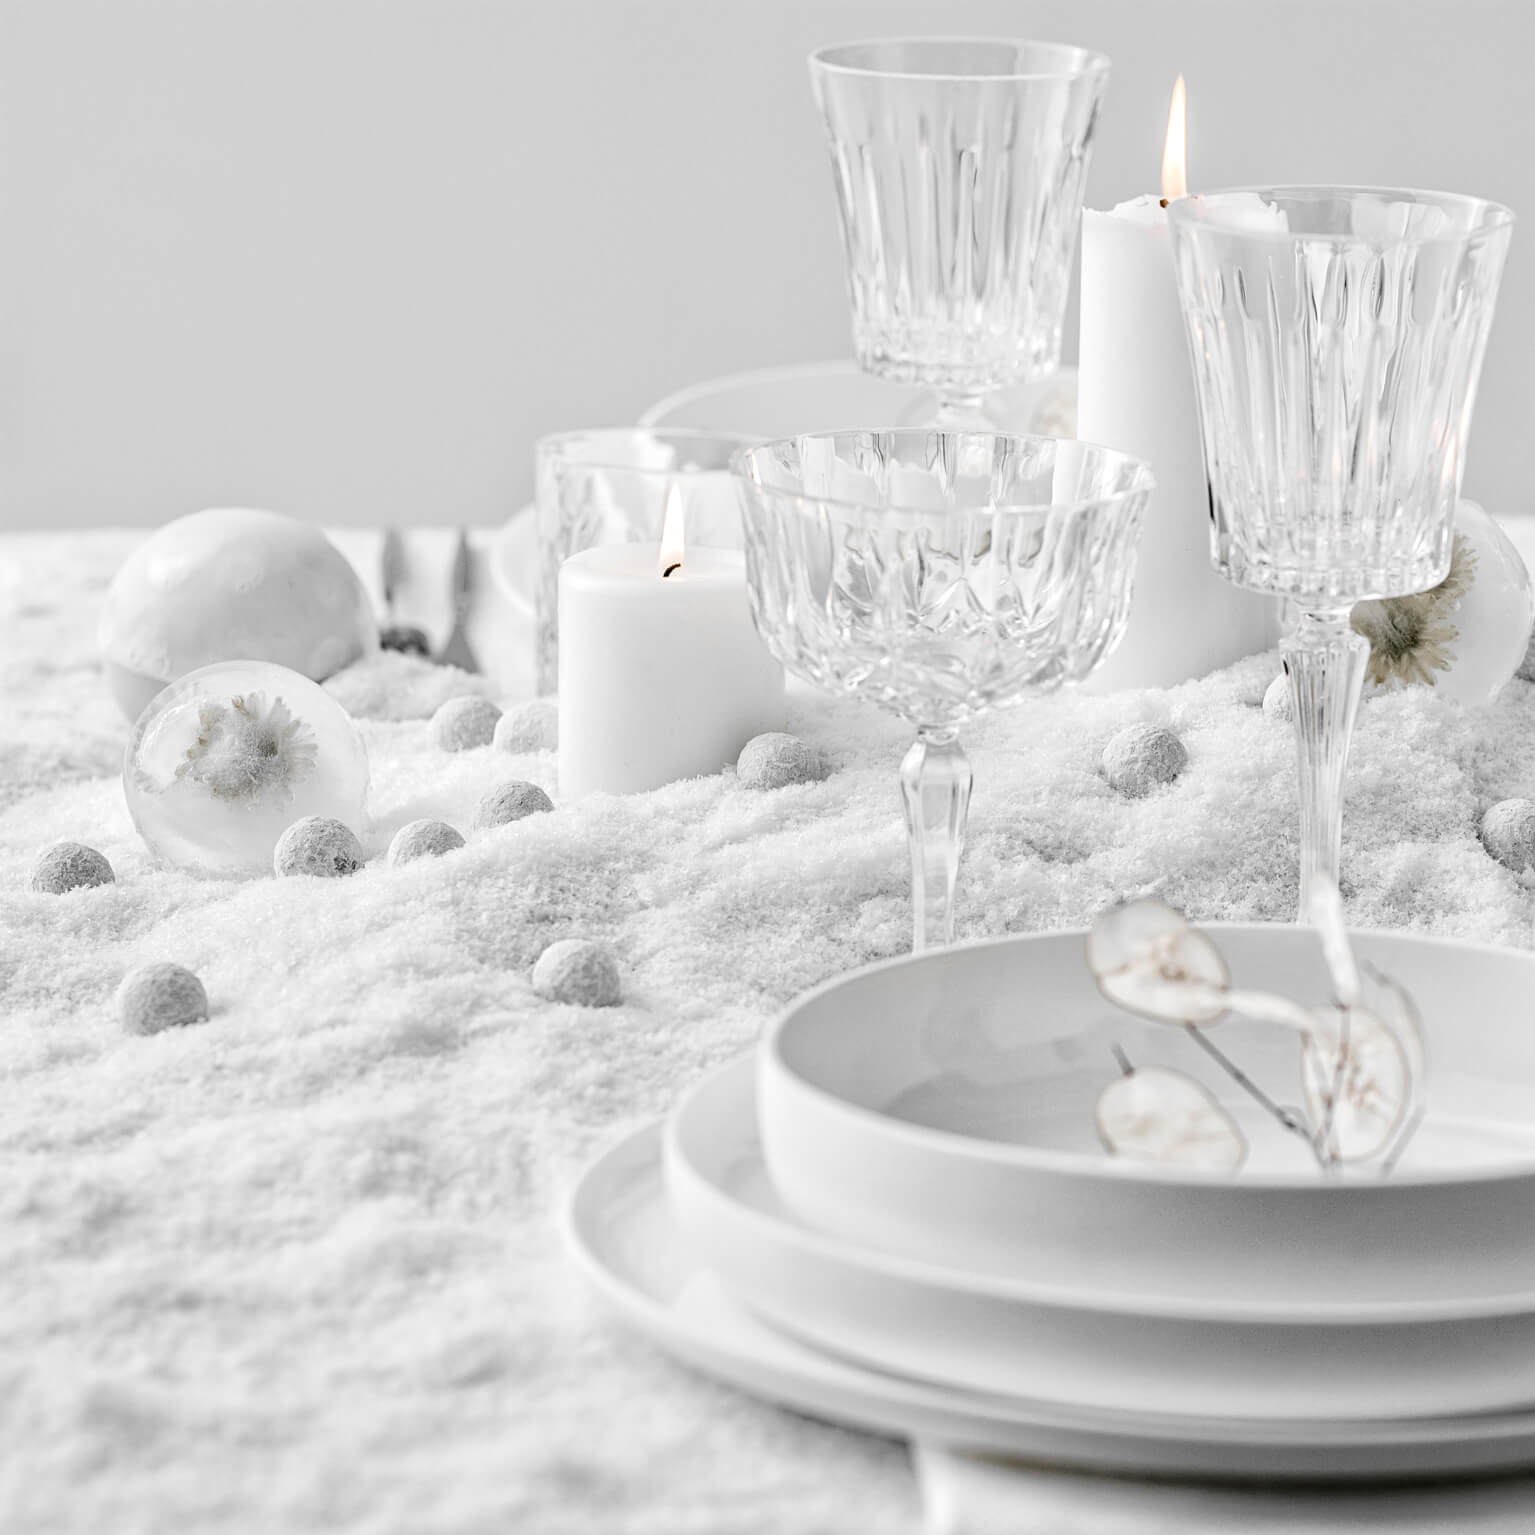 white christmas_lakrids_johan bulow_a table story_ julebord